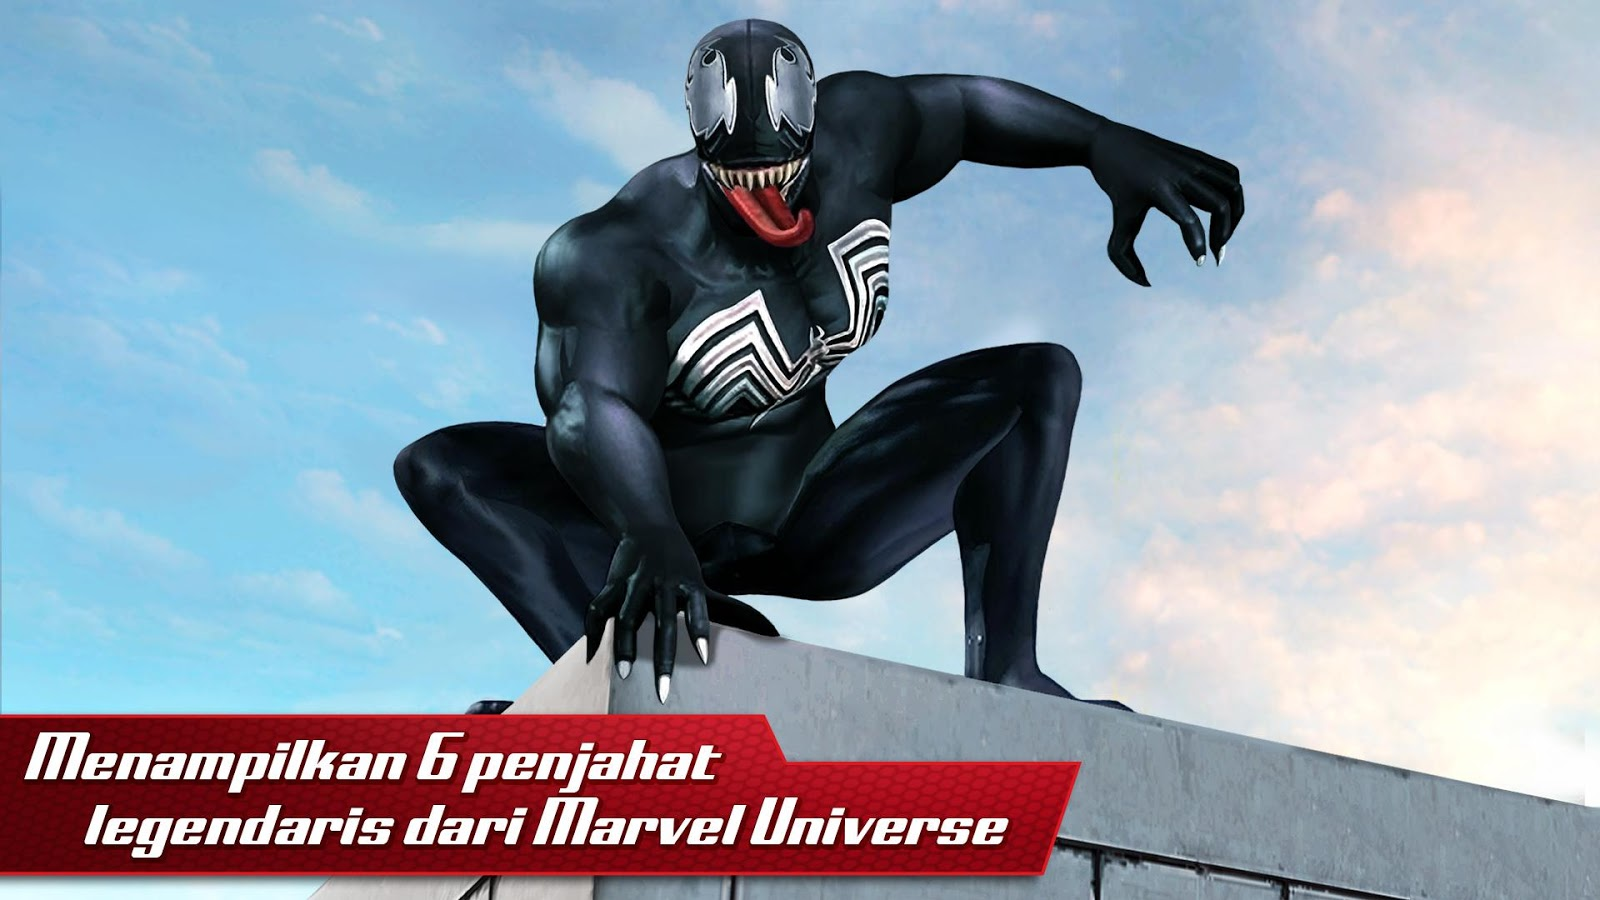 The Amazing Spider-Man 2- tangkapan layar